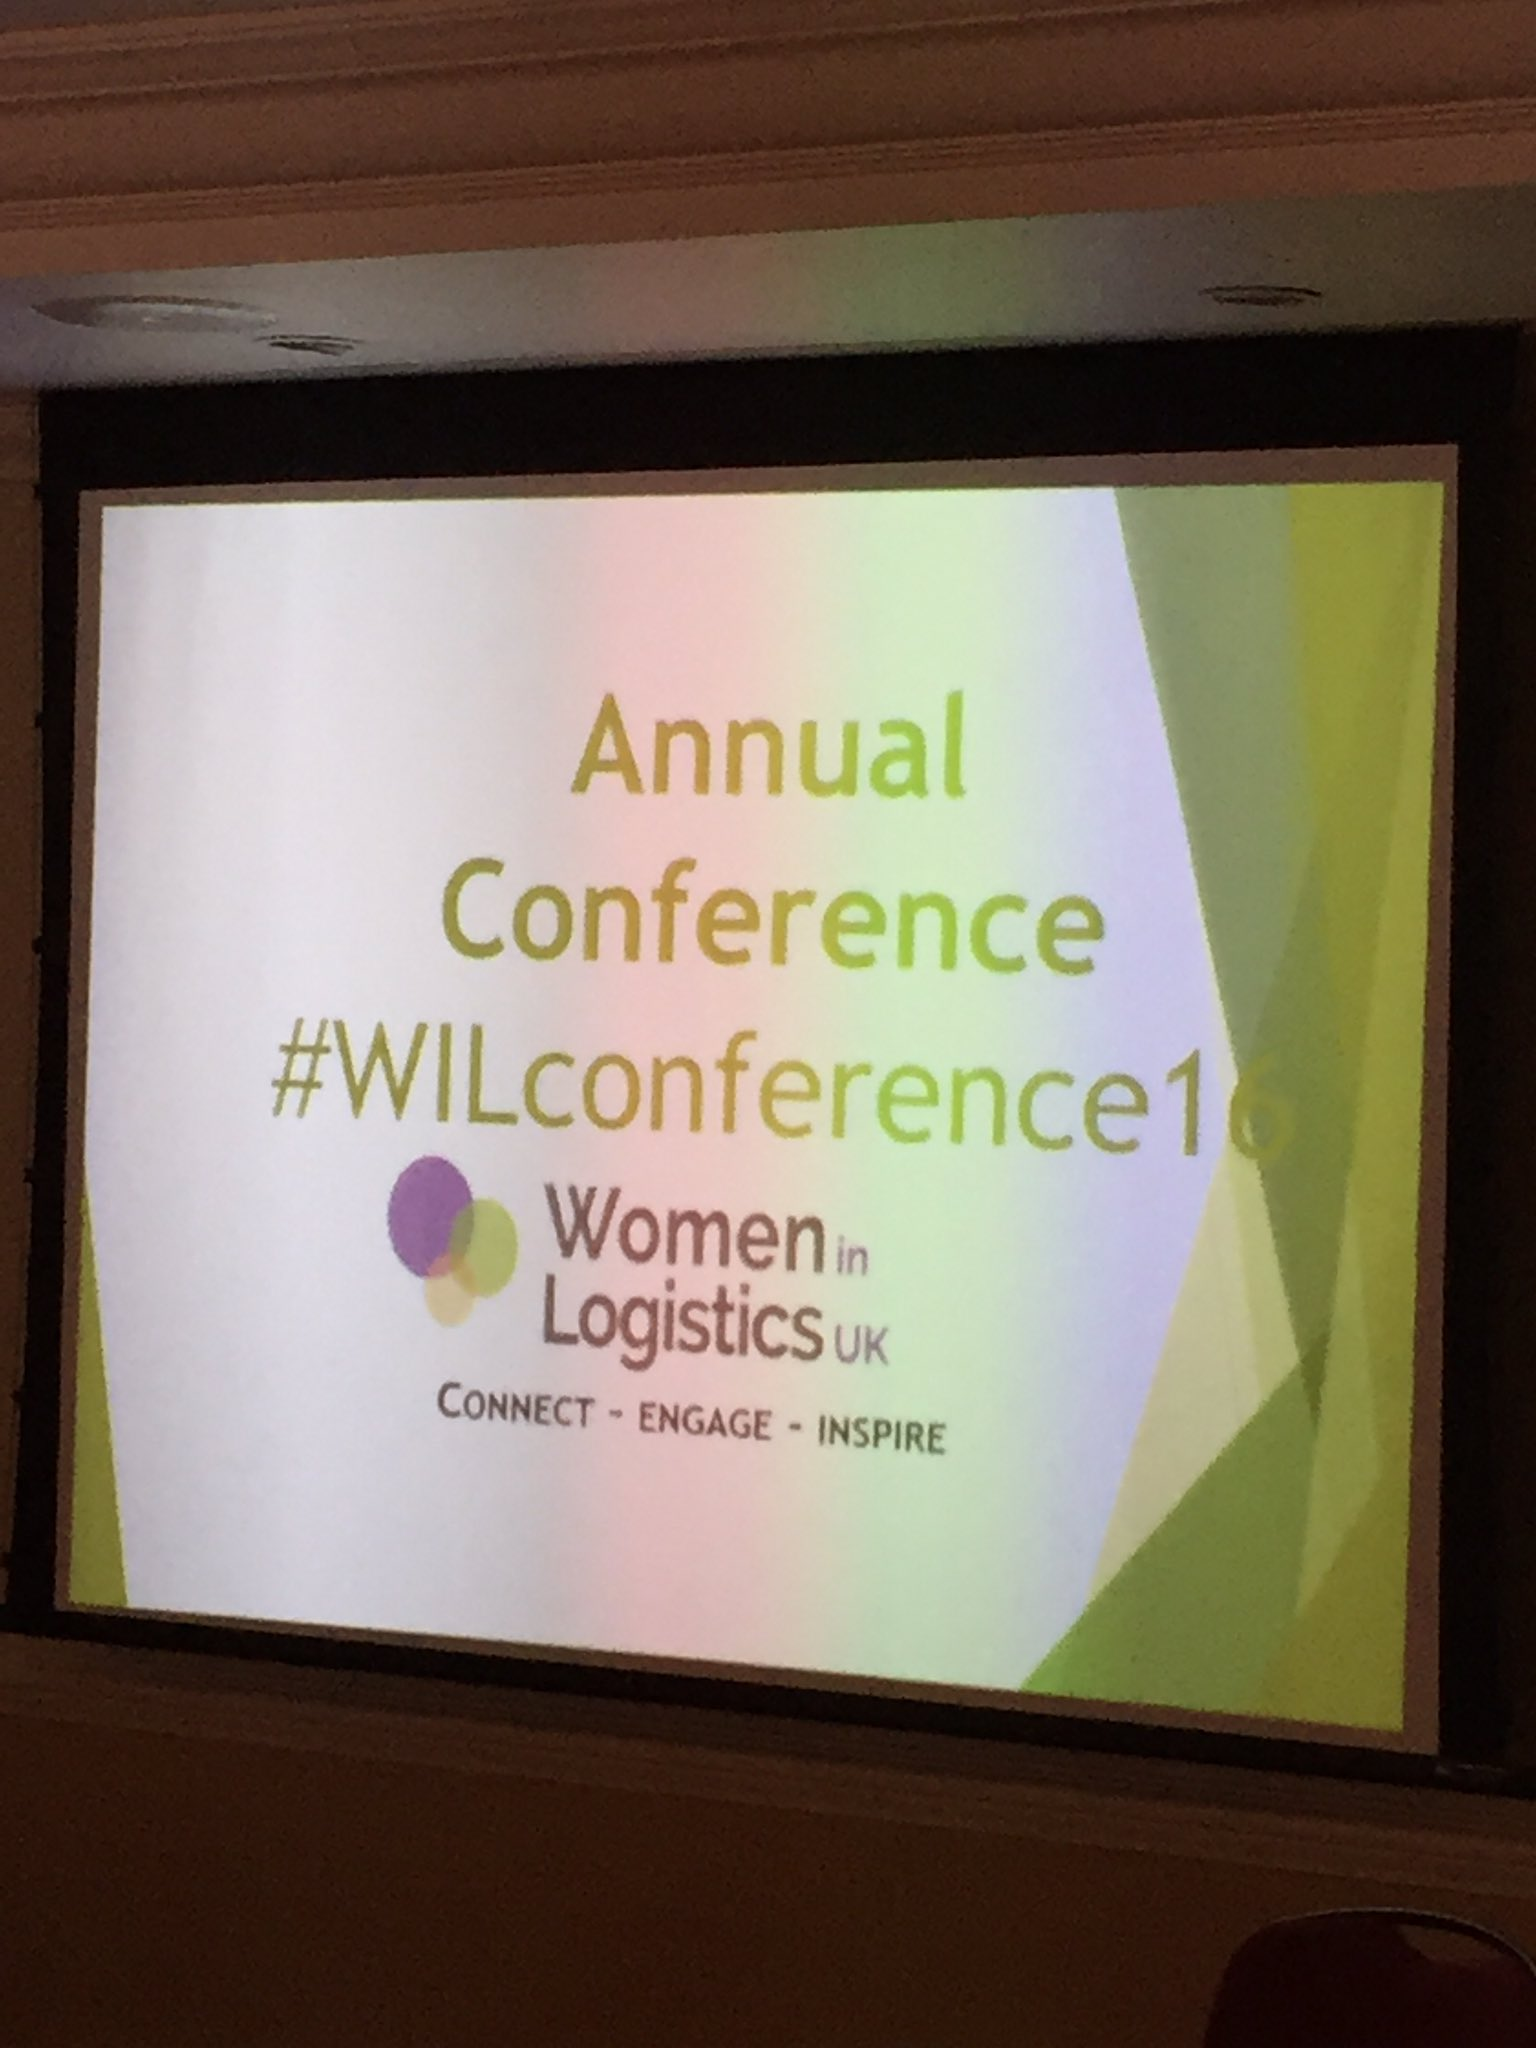 Looking forward to the #WILconference16 today! Great line up of speakers! https://t.co/YTzCItcVRH